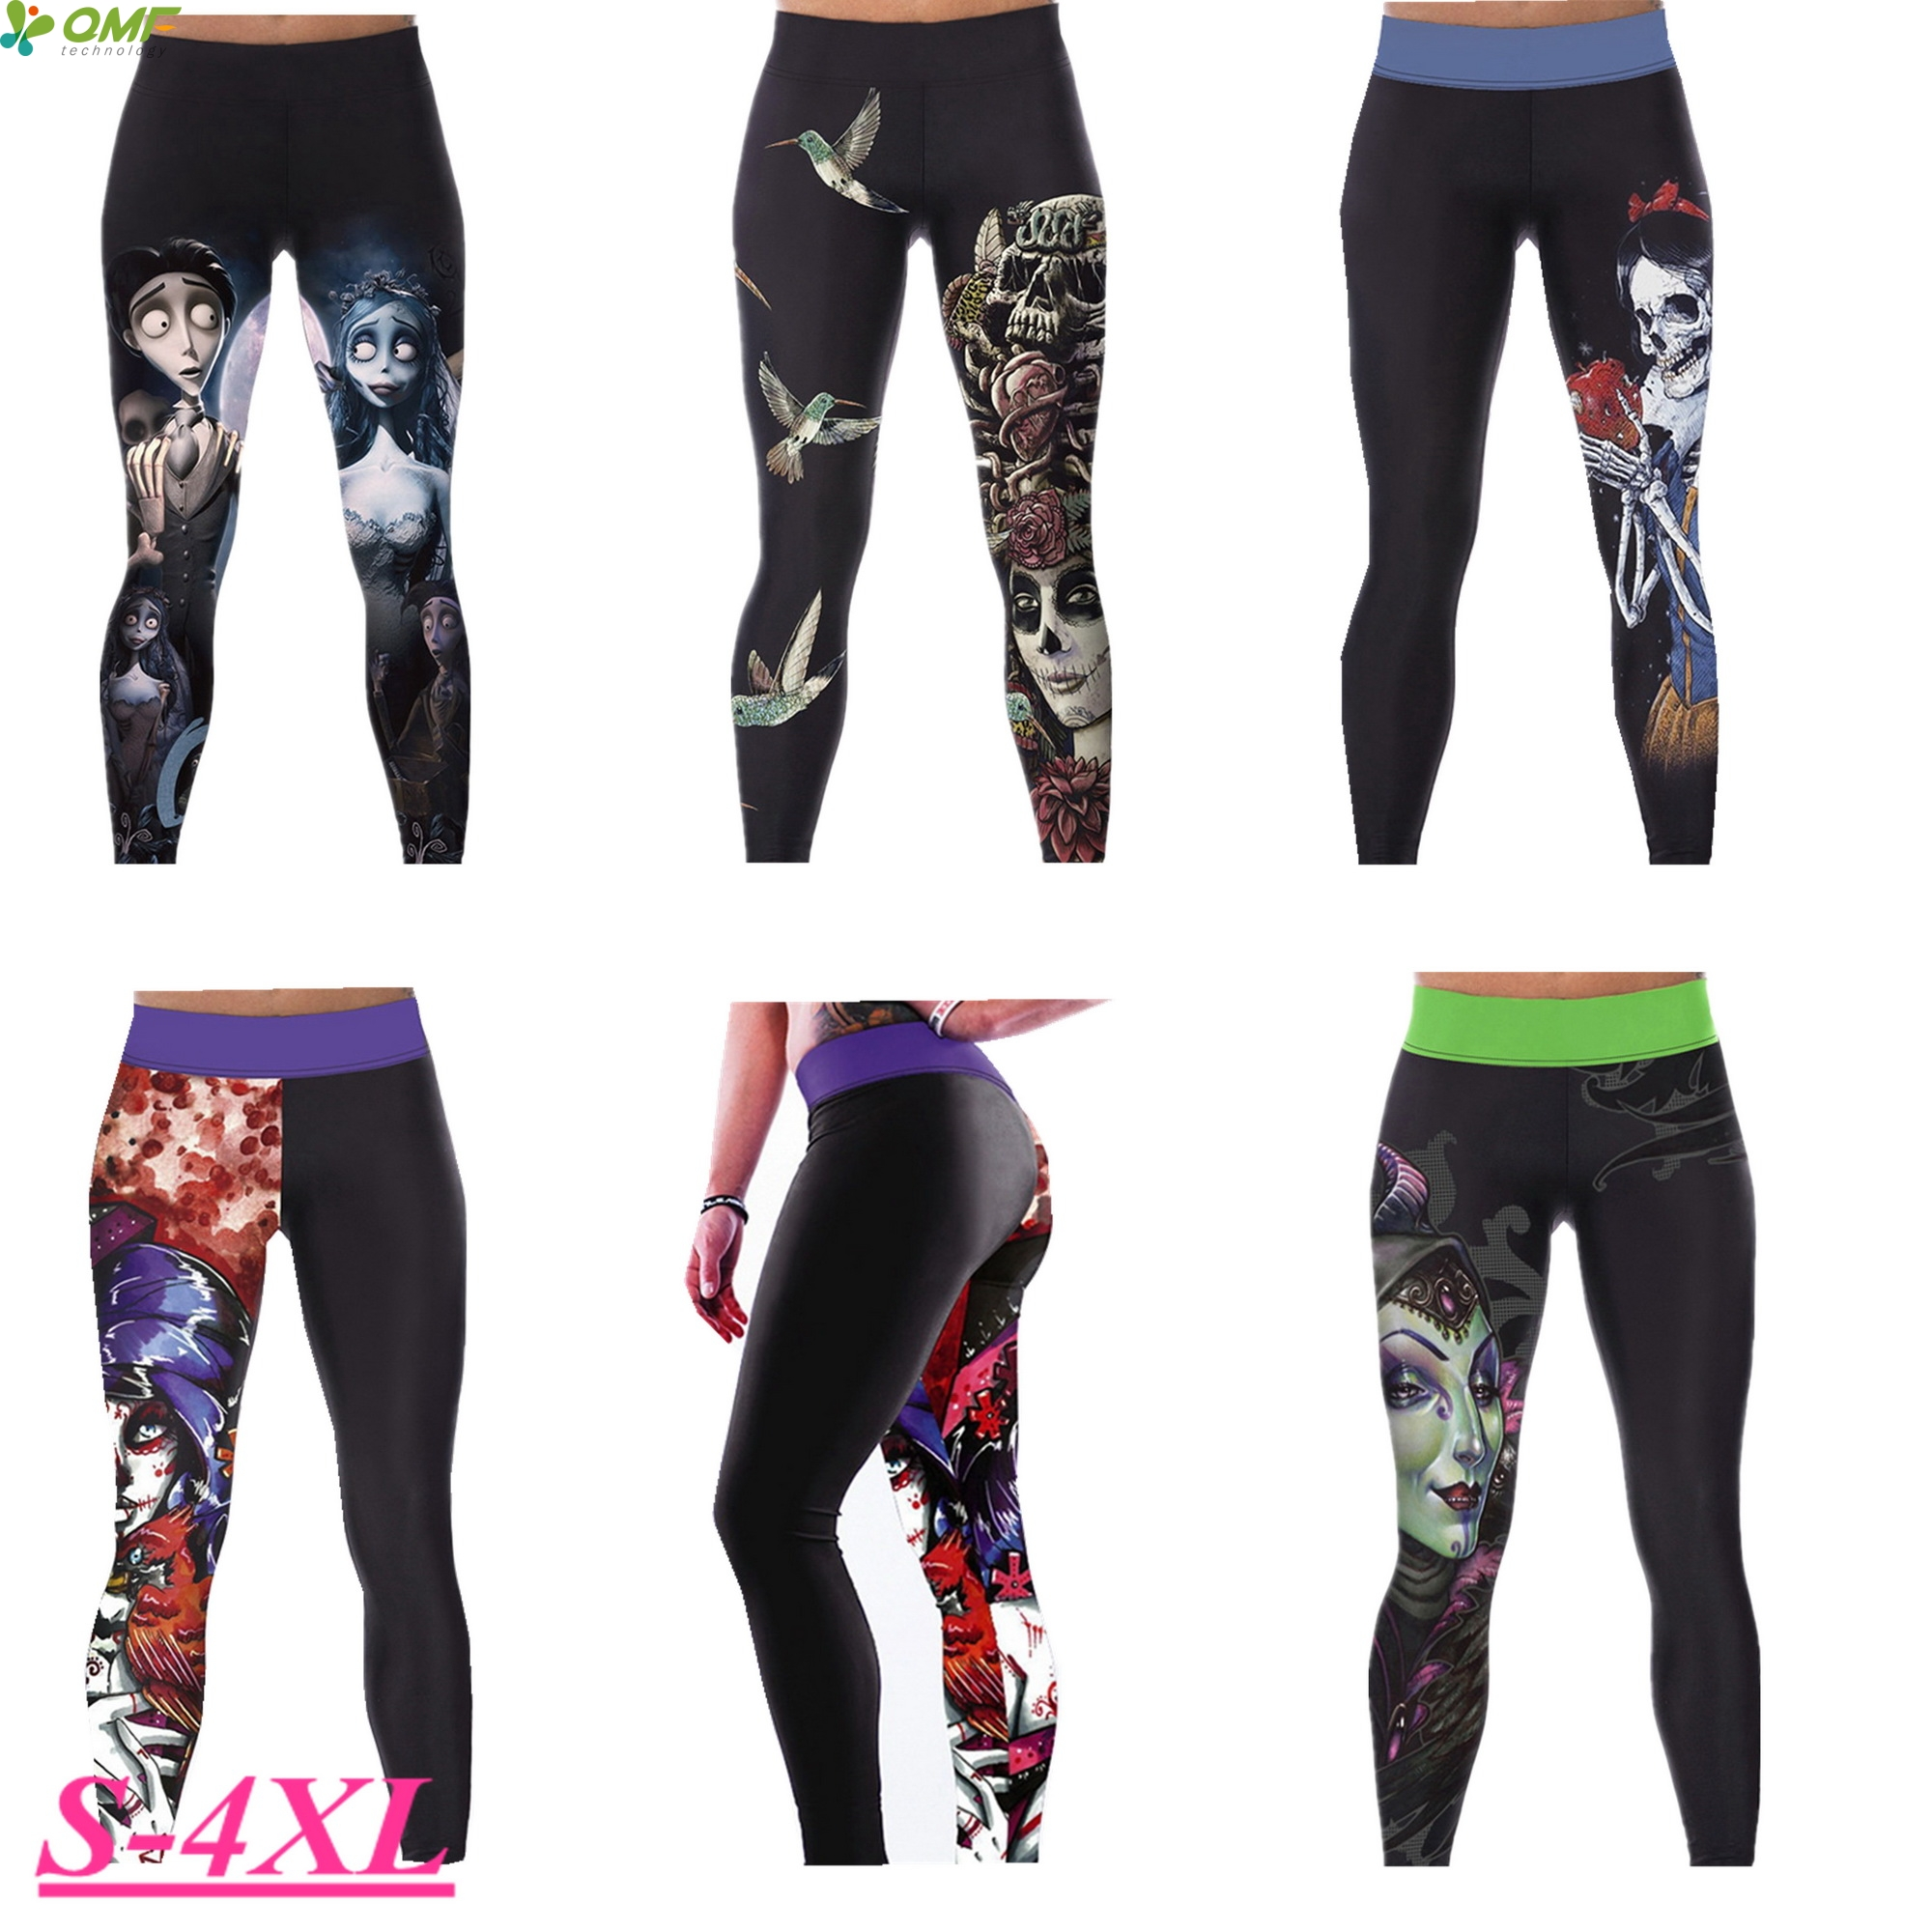 2e401a1bdf Evil Queen Women's Compression Yoga Pants Corpse Bride Running Leggings  Fitness Gym Tights Sugar Skull Sport